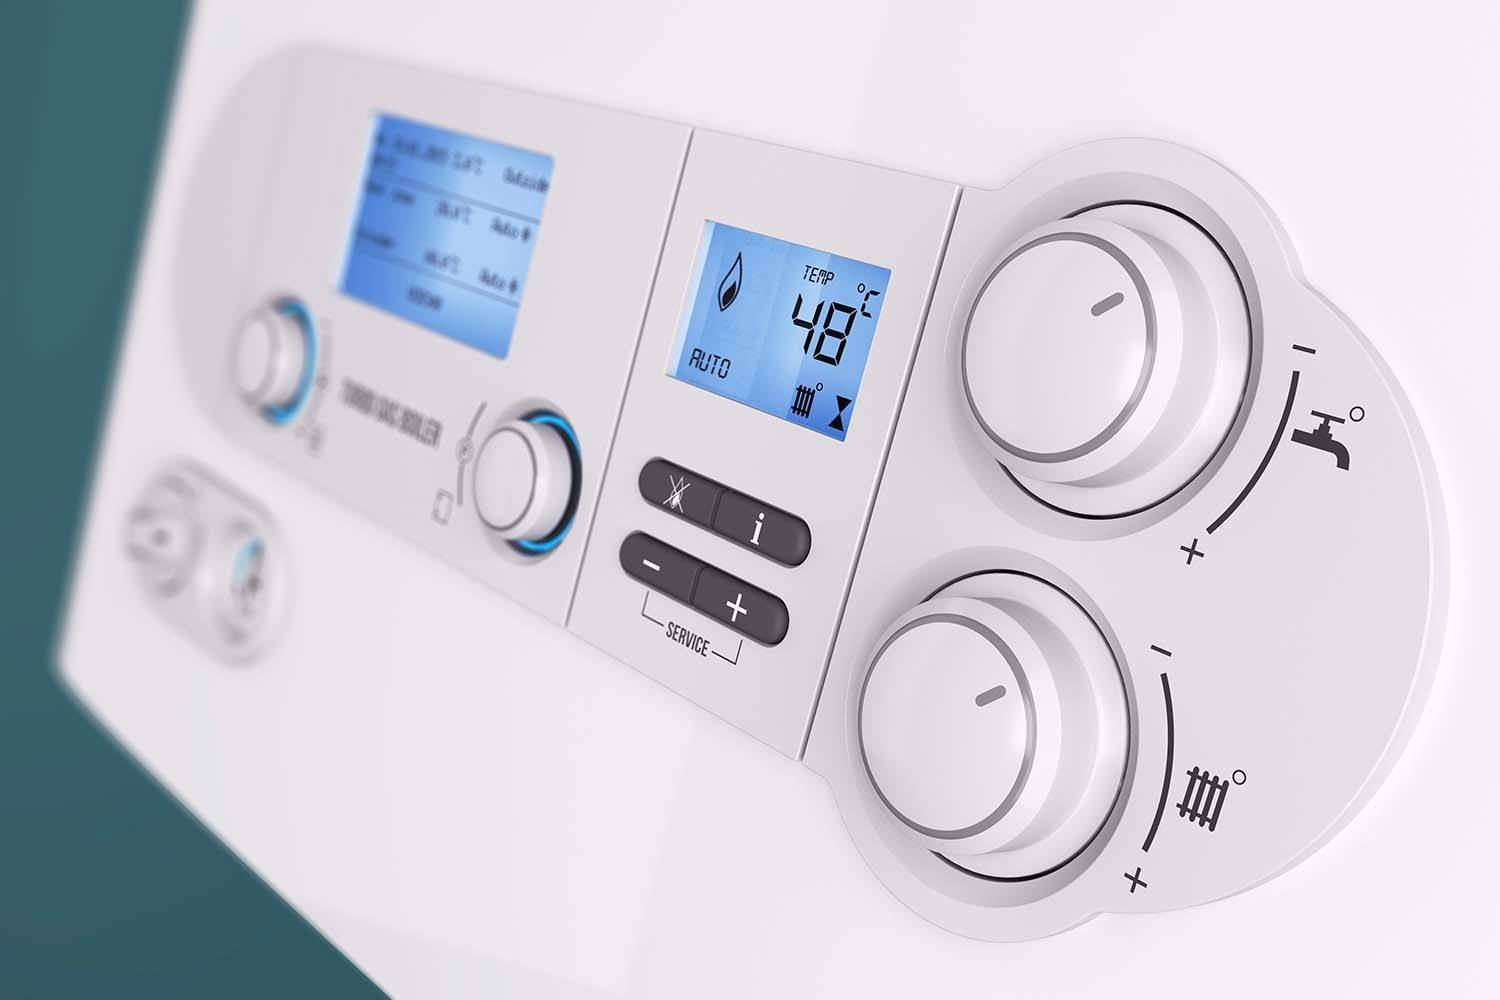 Watch: How to prepare your boiler for winter